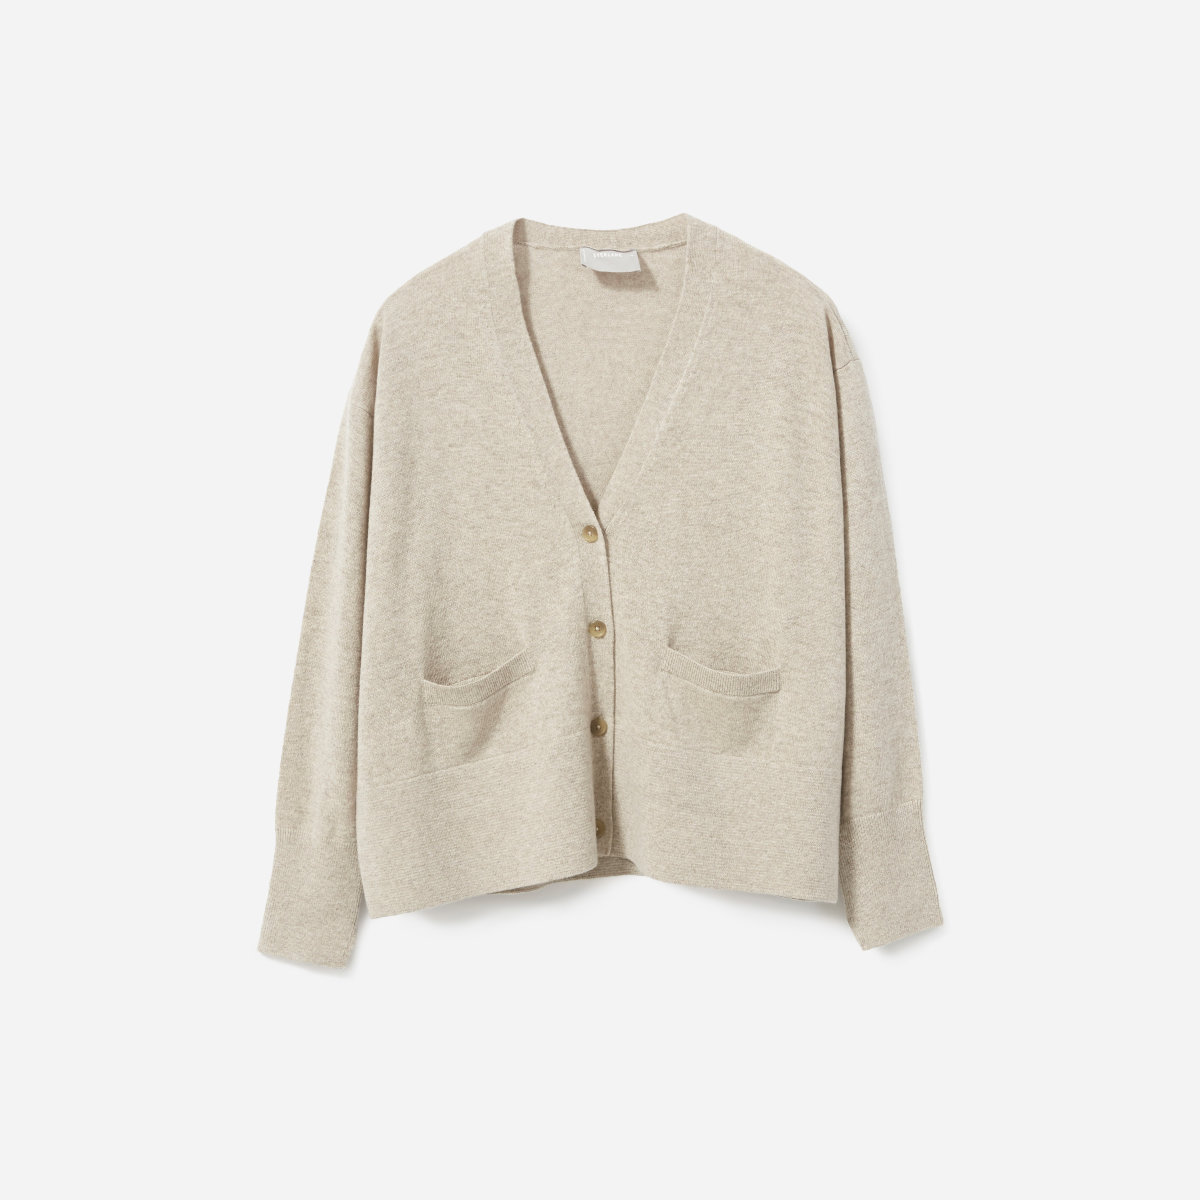 Everlane Cashmere Square V-Neck Cardigan